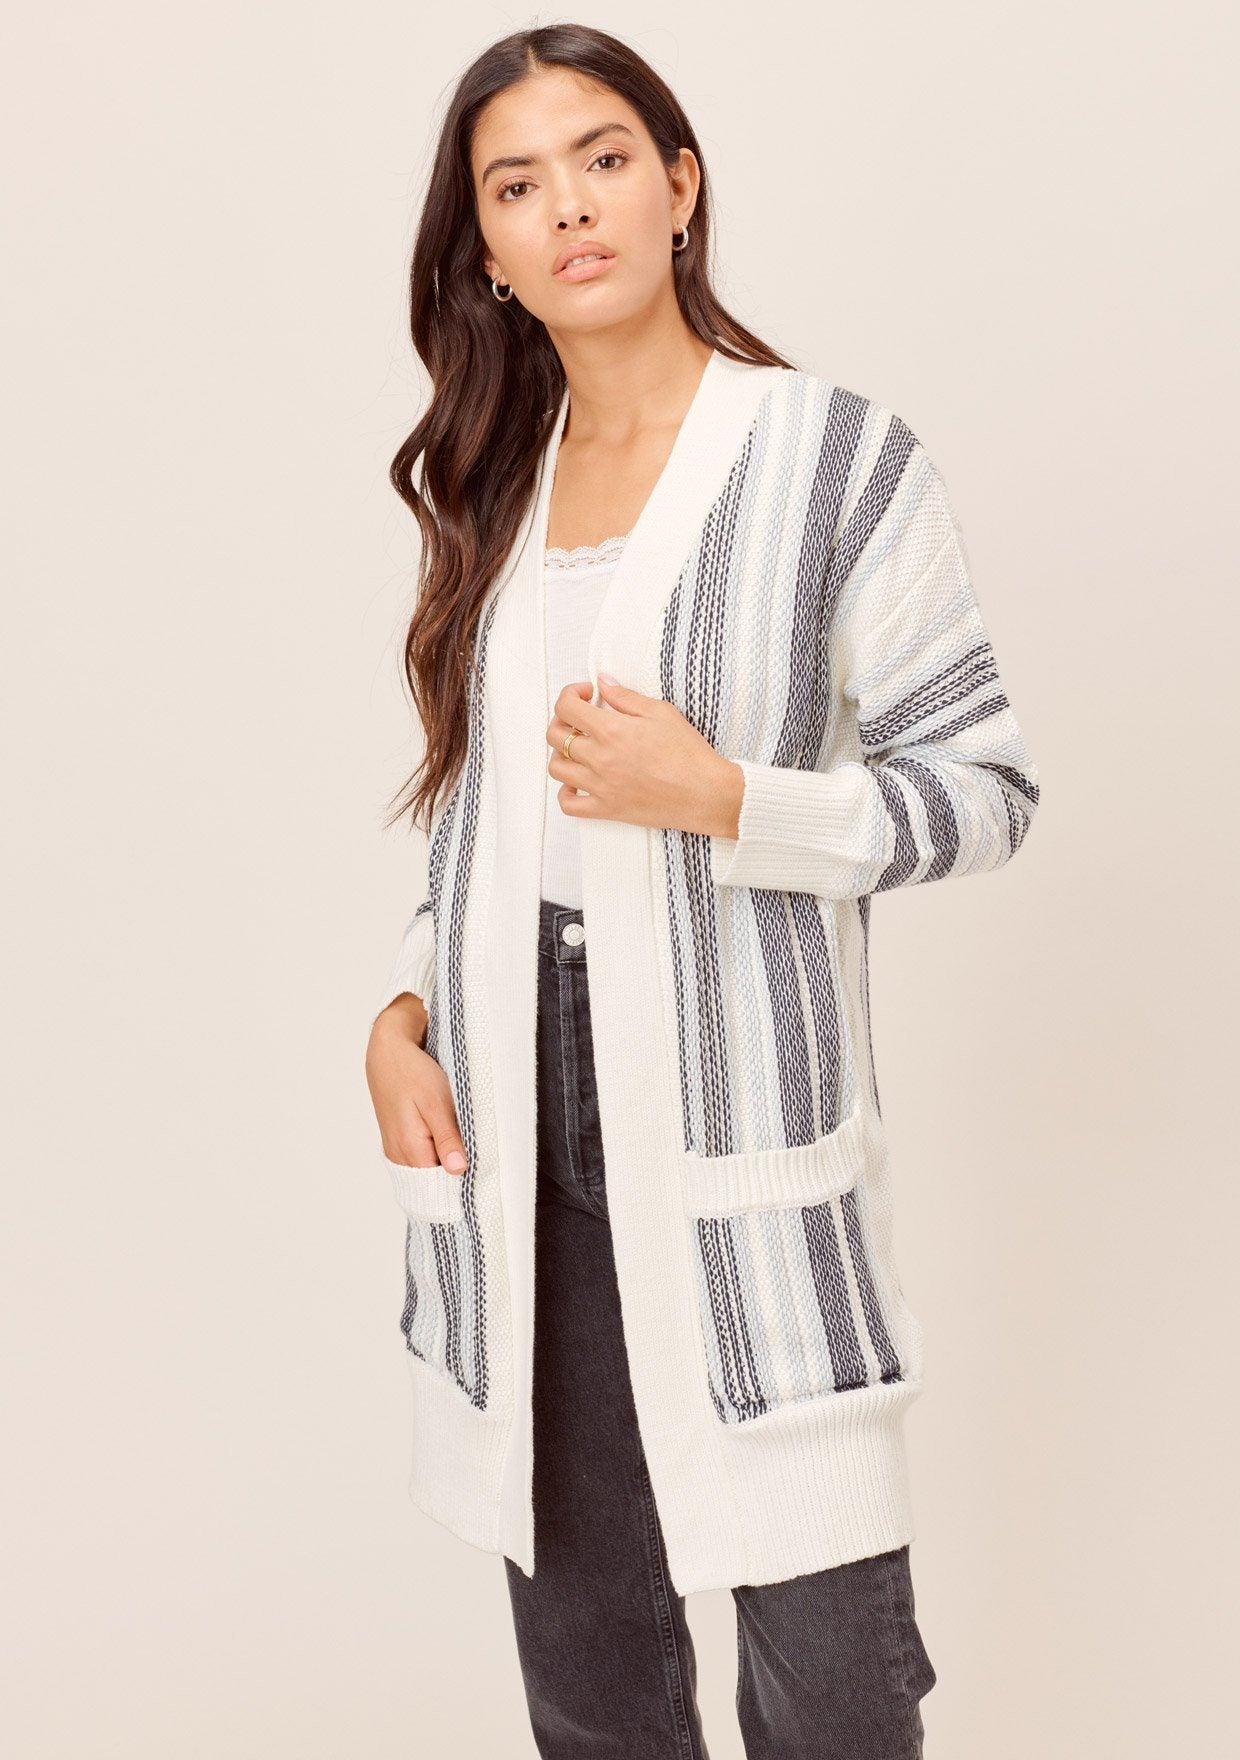 [Color: Blue Combo] Lovestitch Total beach vibes! Chunky, striped mid-length cardigan with deep side pockets and chic contrast rib detail. The perfect cardigan for chilly beach days!